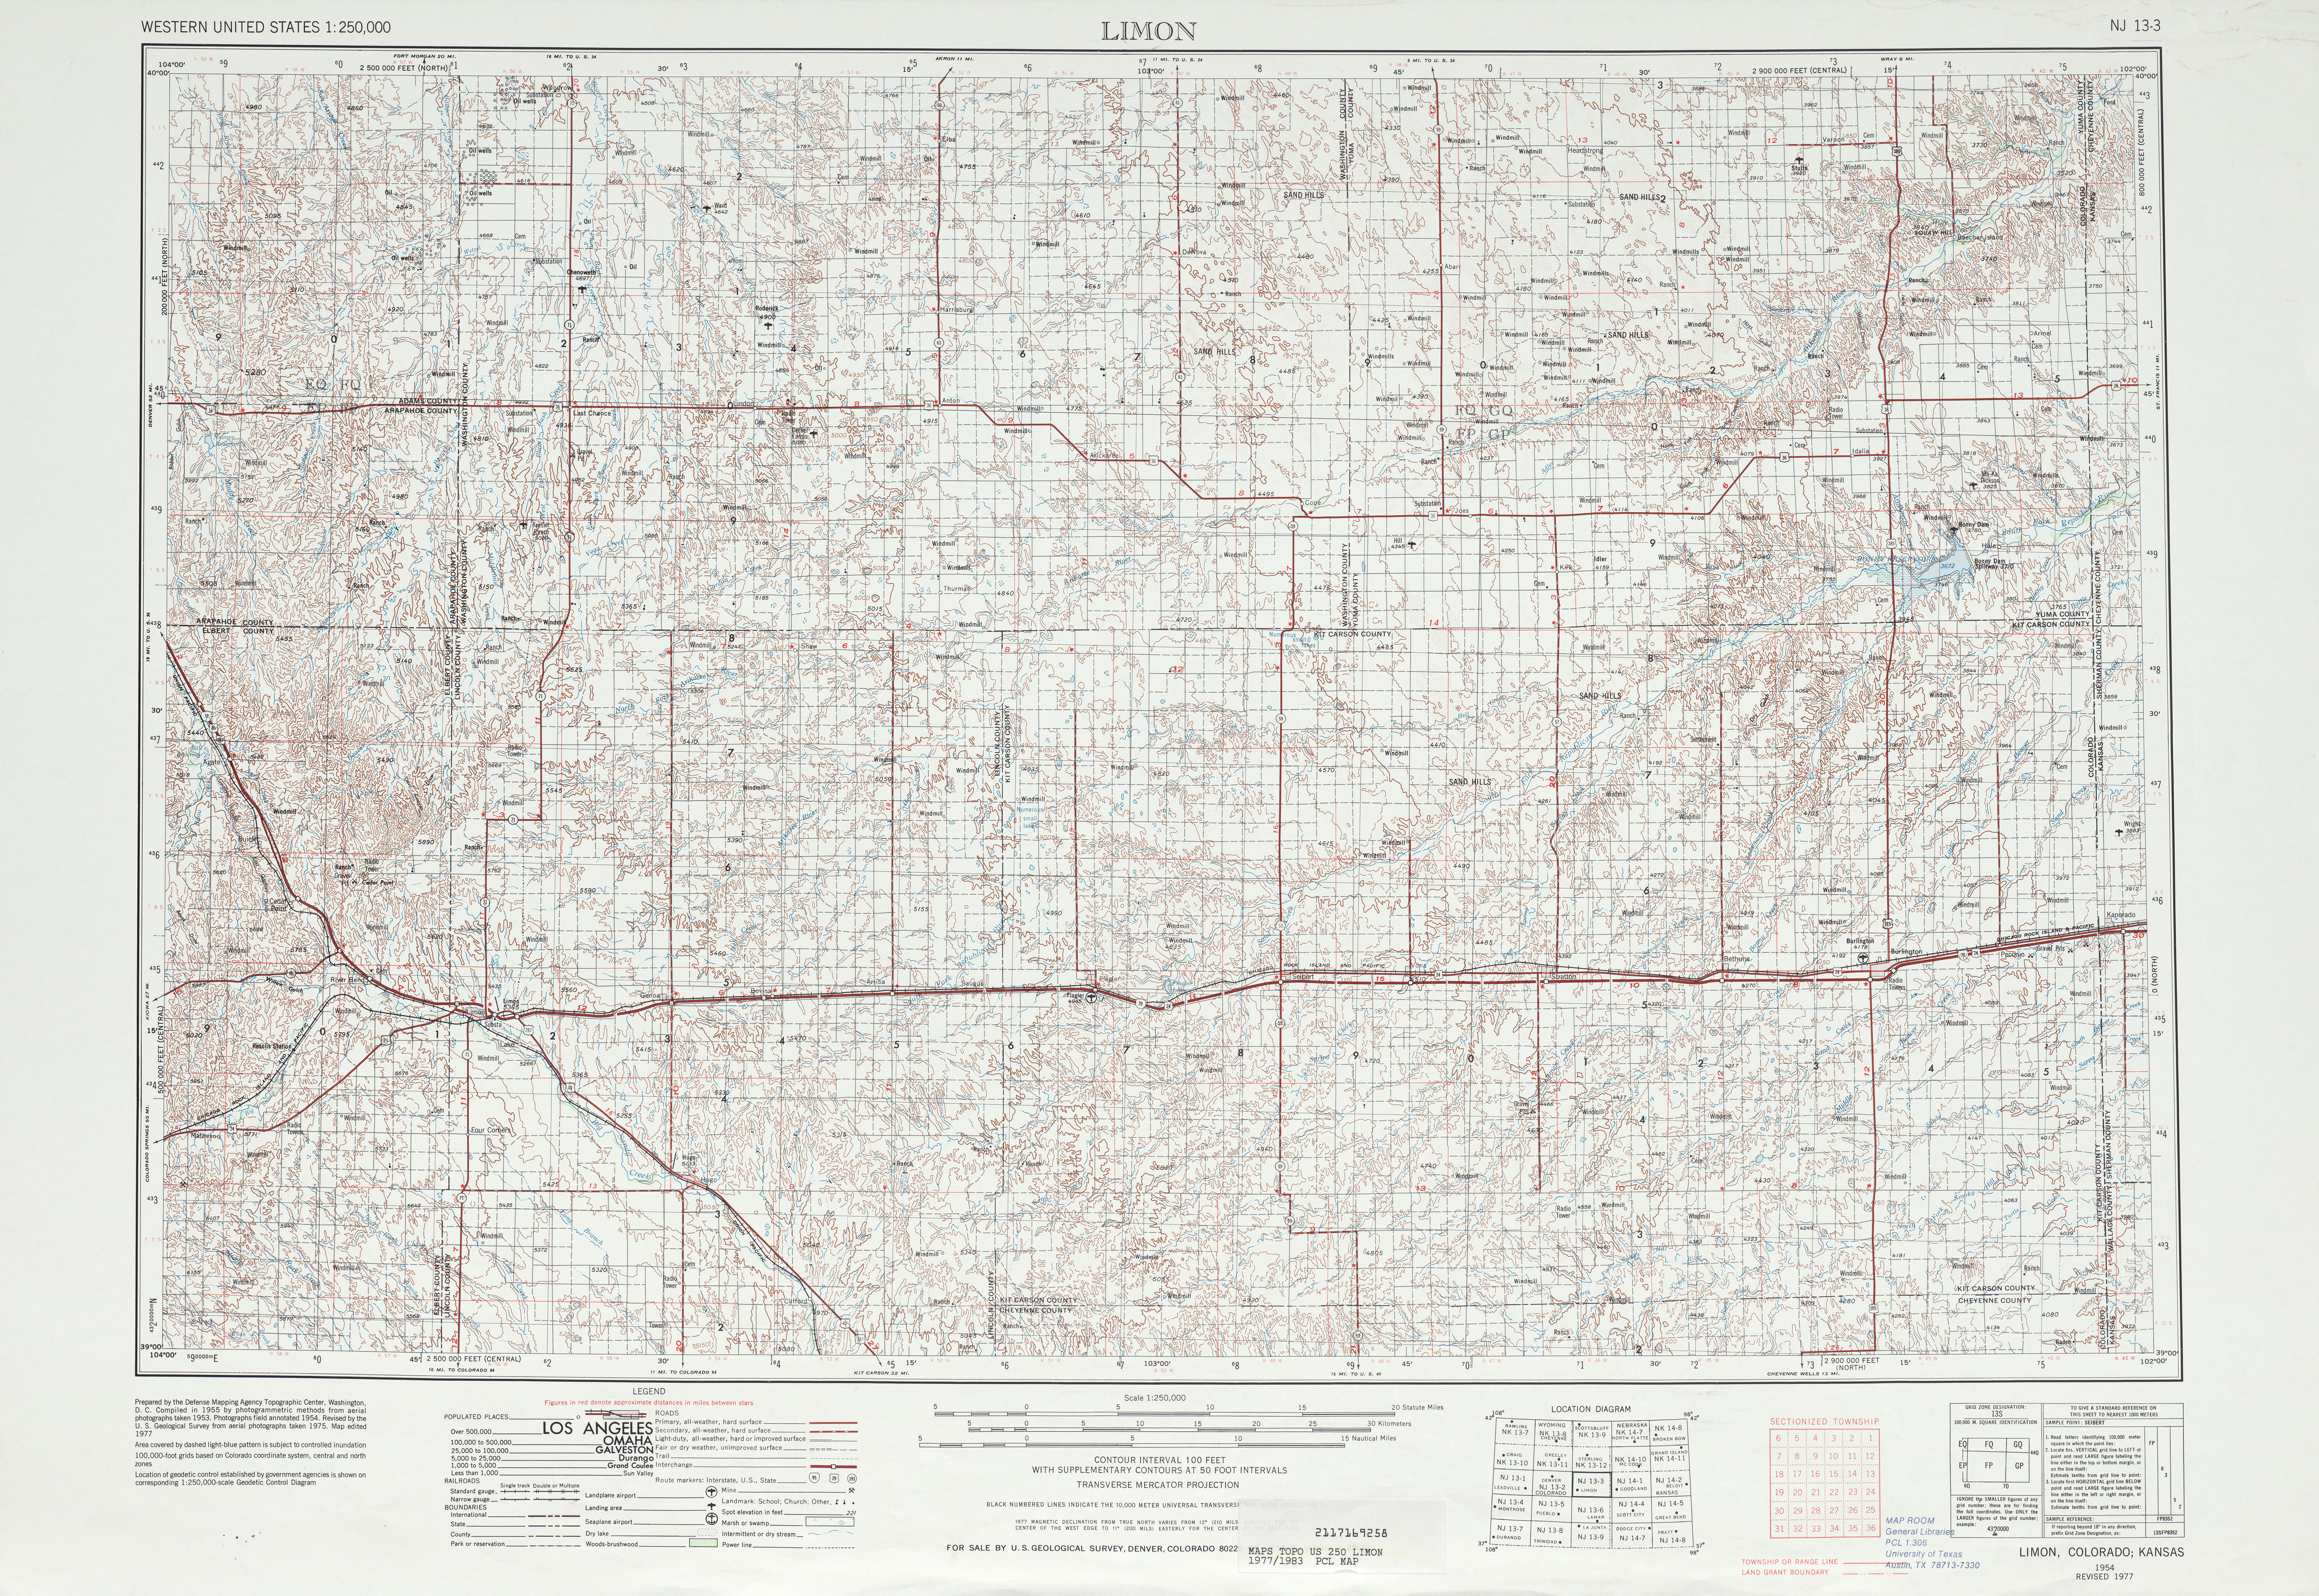 Limon Topographic Map Sheet, United States 1977